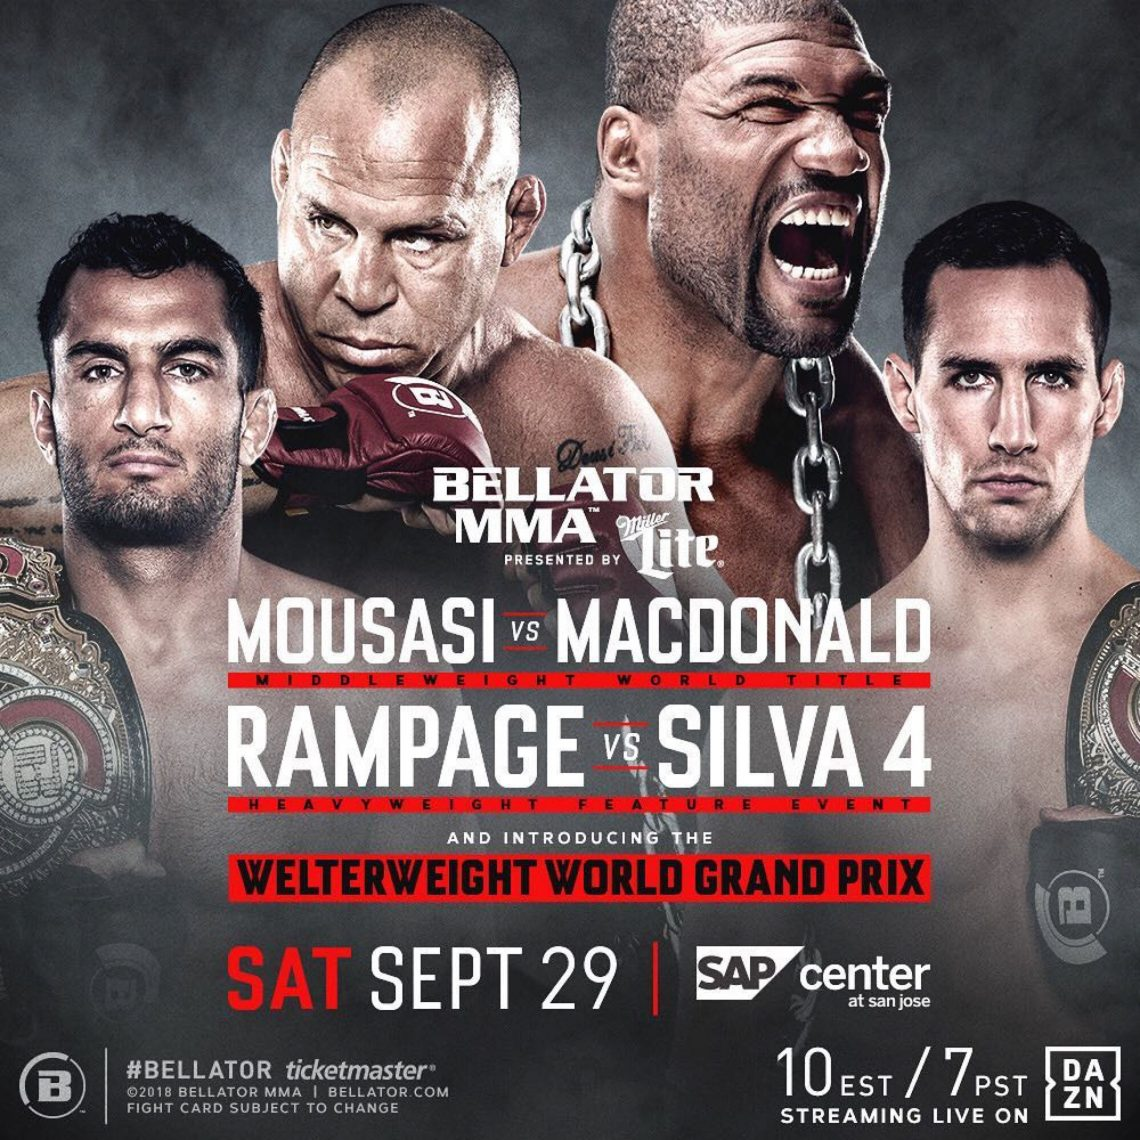 Risultati Bellator 206: McDonald vs Mousasi 1